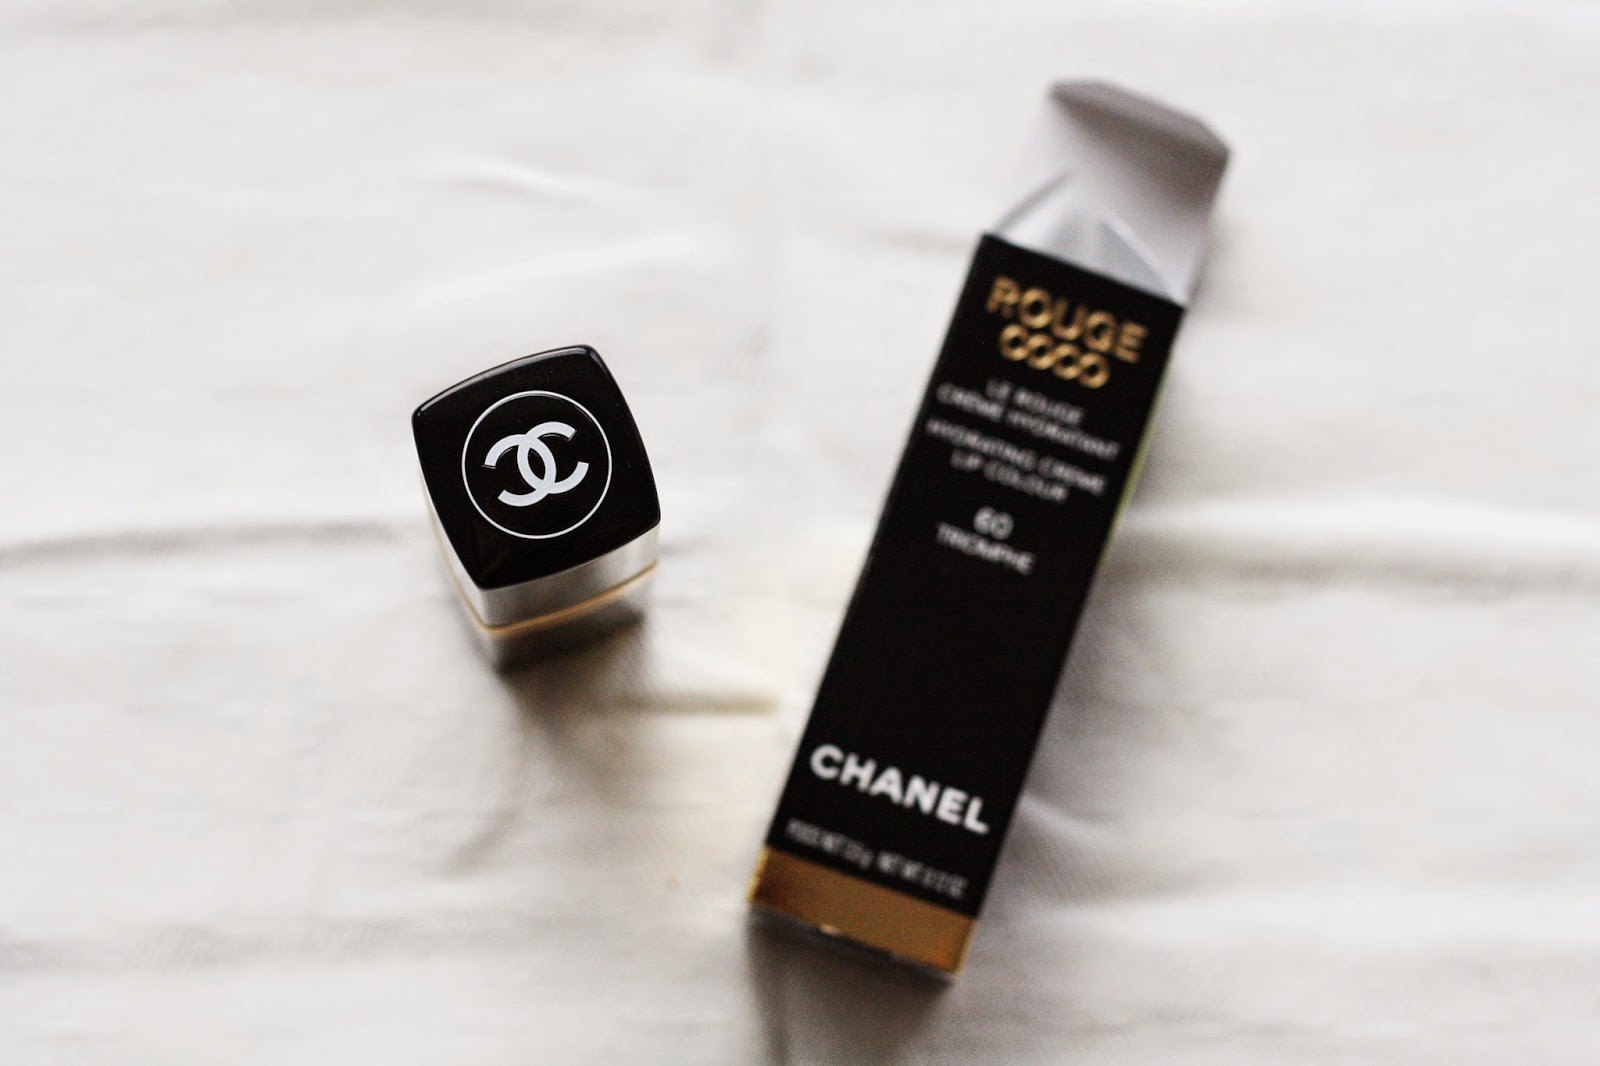 Chanel Rouge Coco hydrating creme lipstick